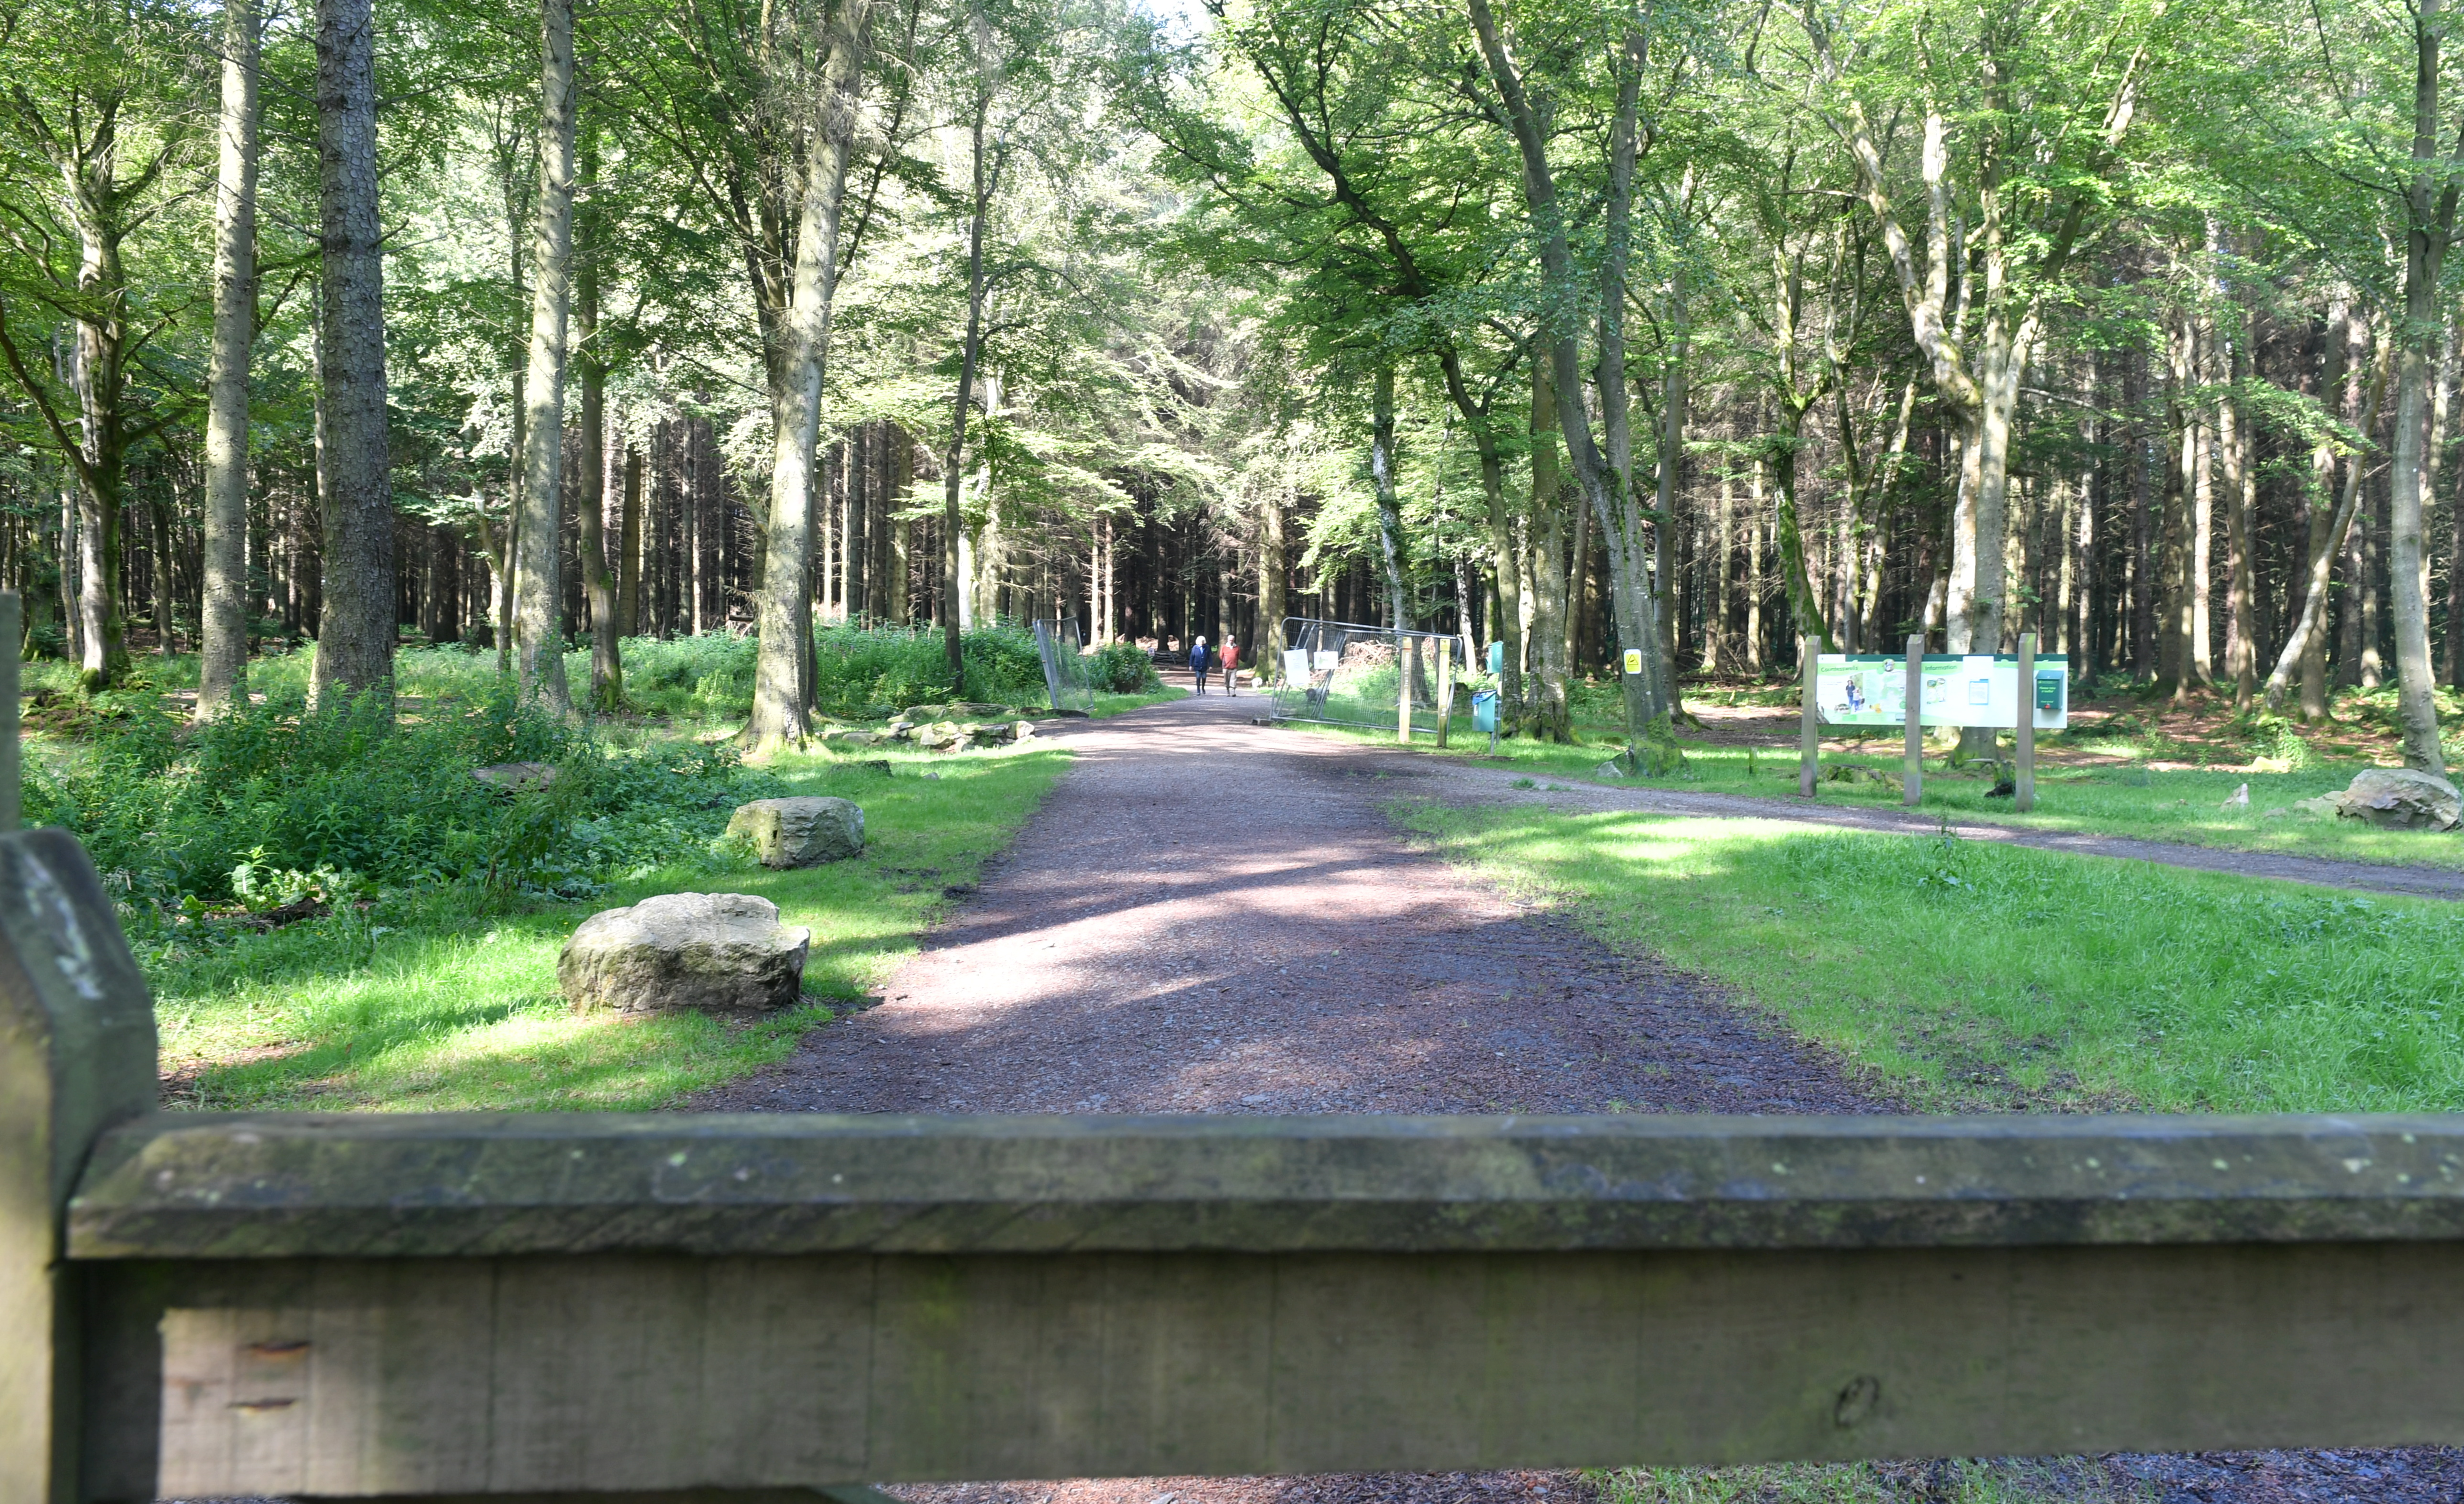 The car park at Countesswells Woods